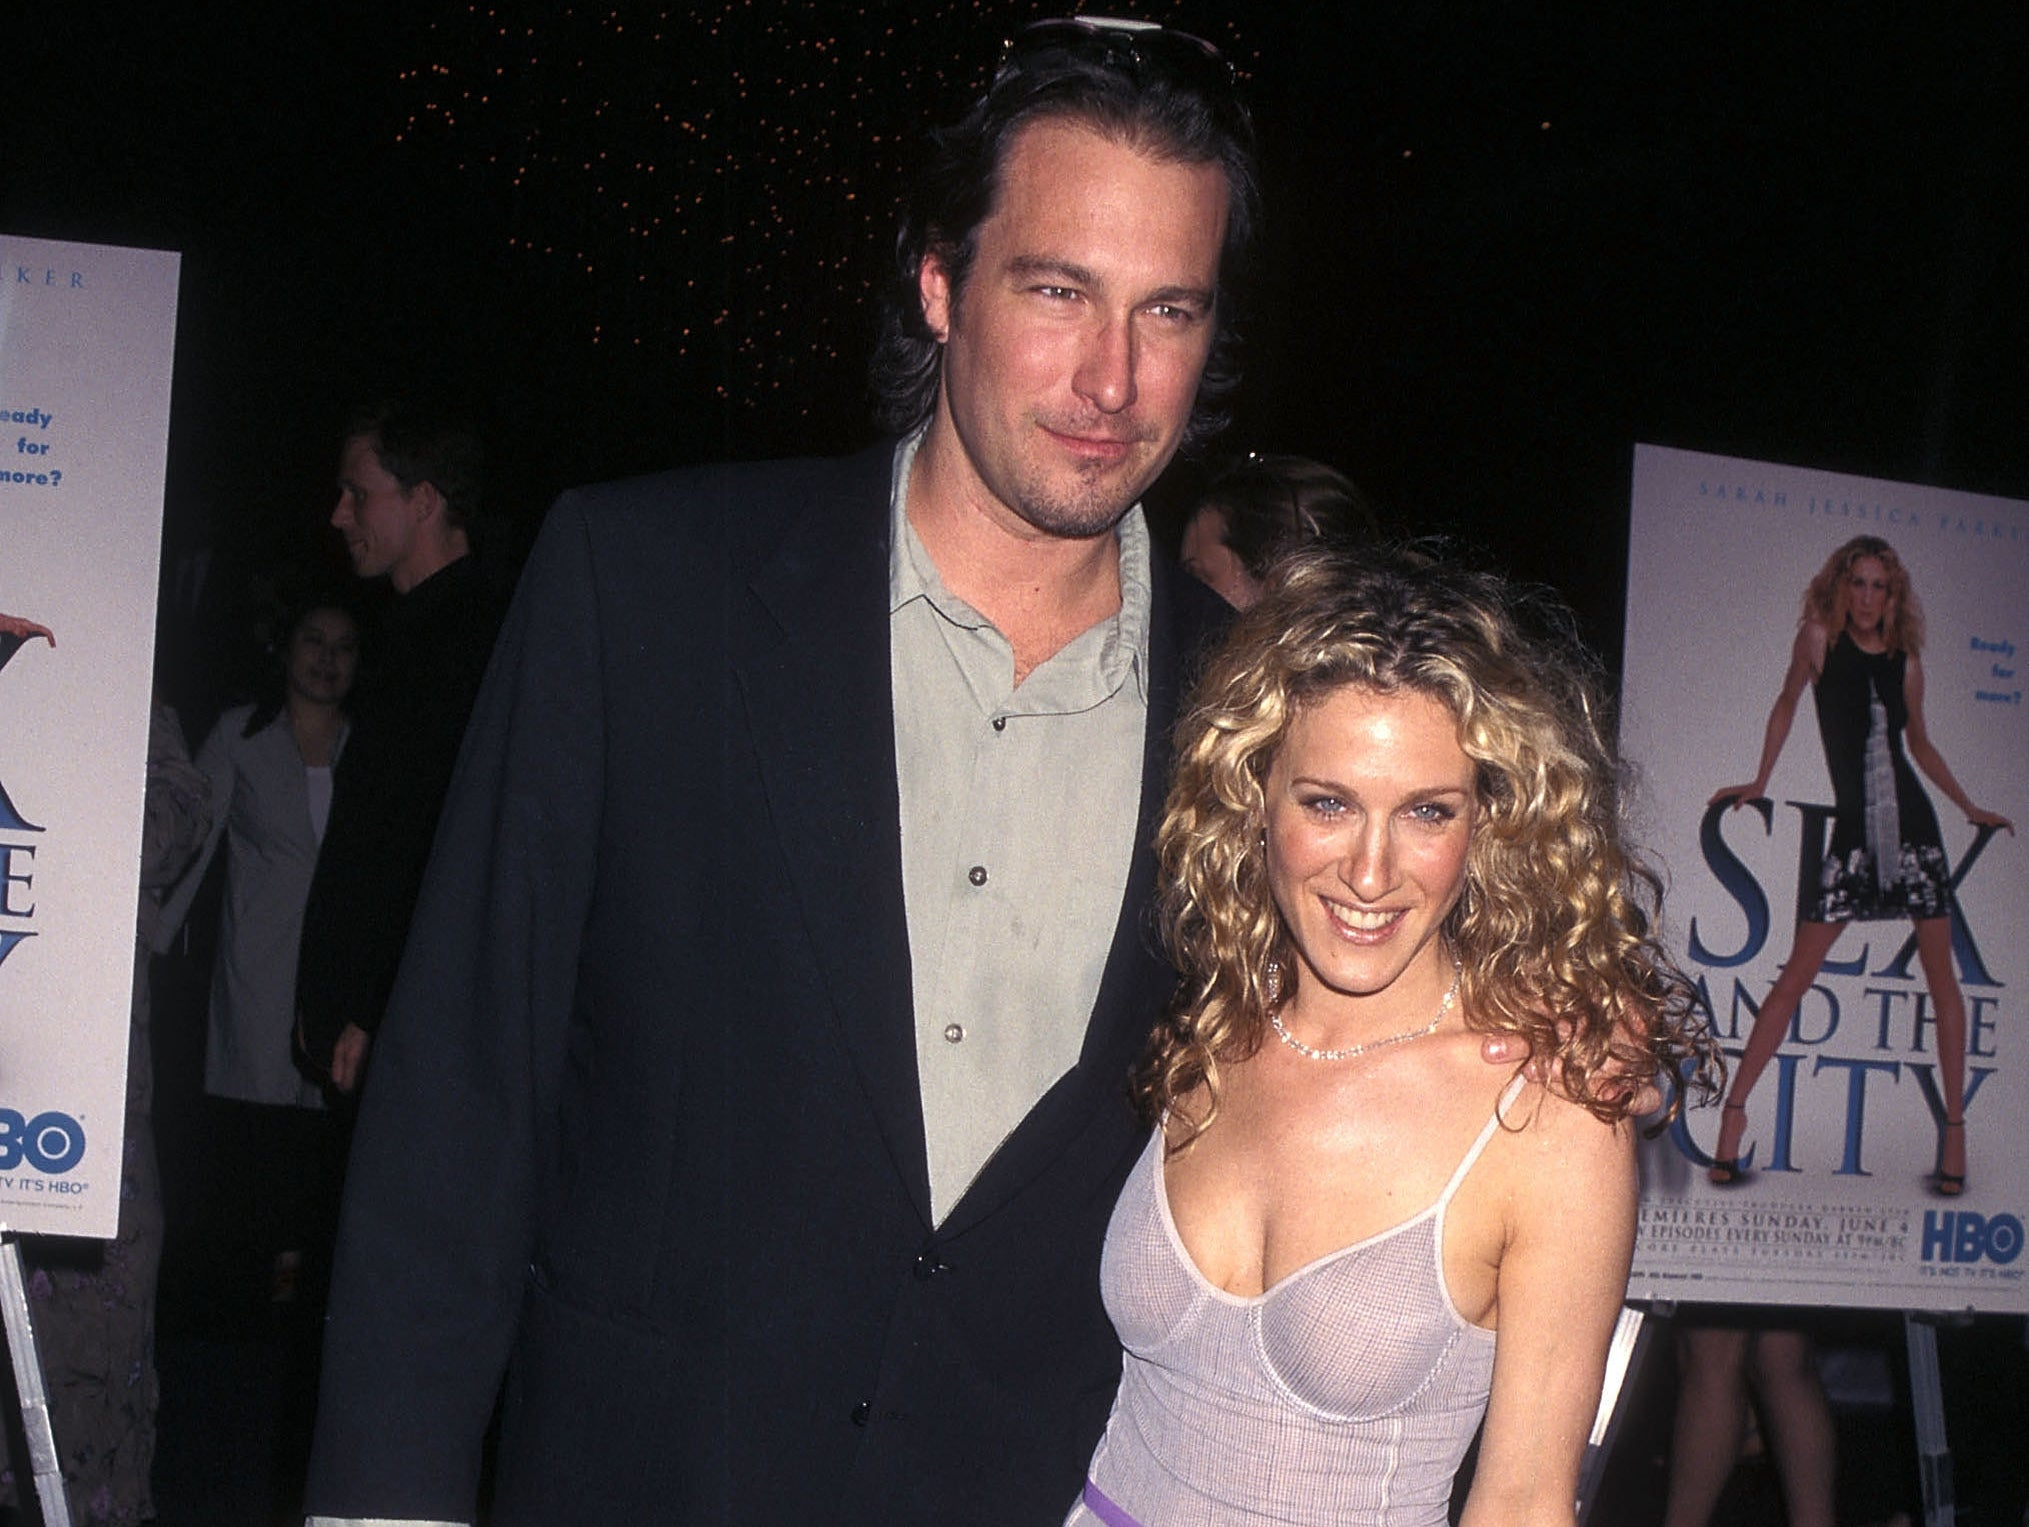 Sarah and John pose together at a Sex and the City premiere